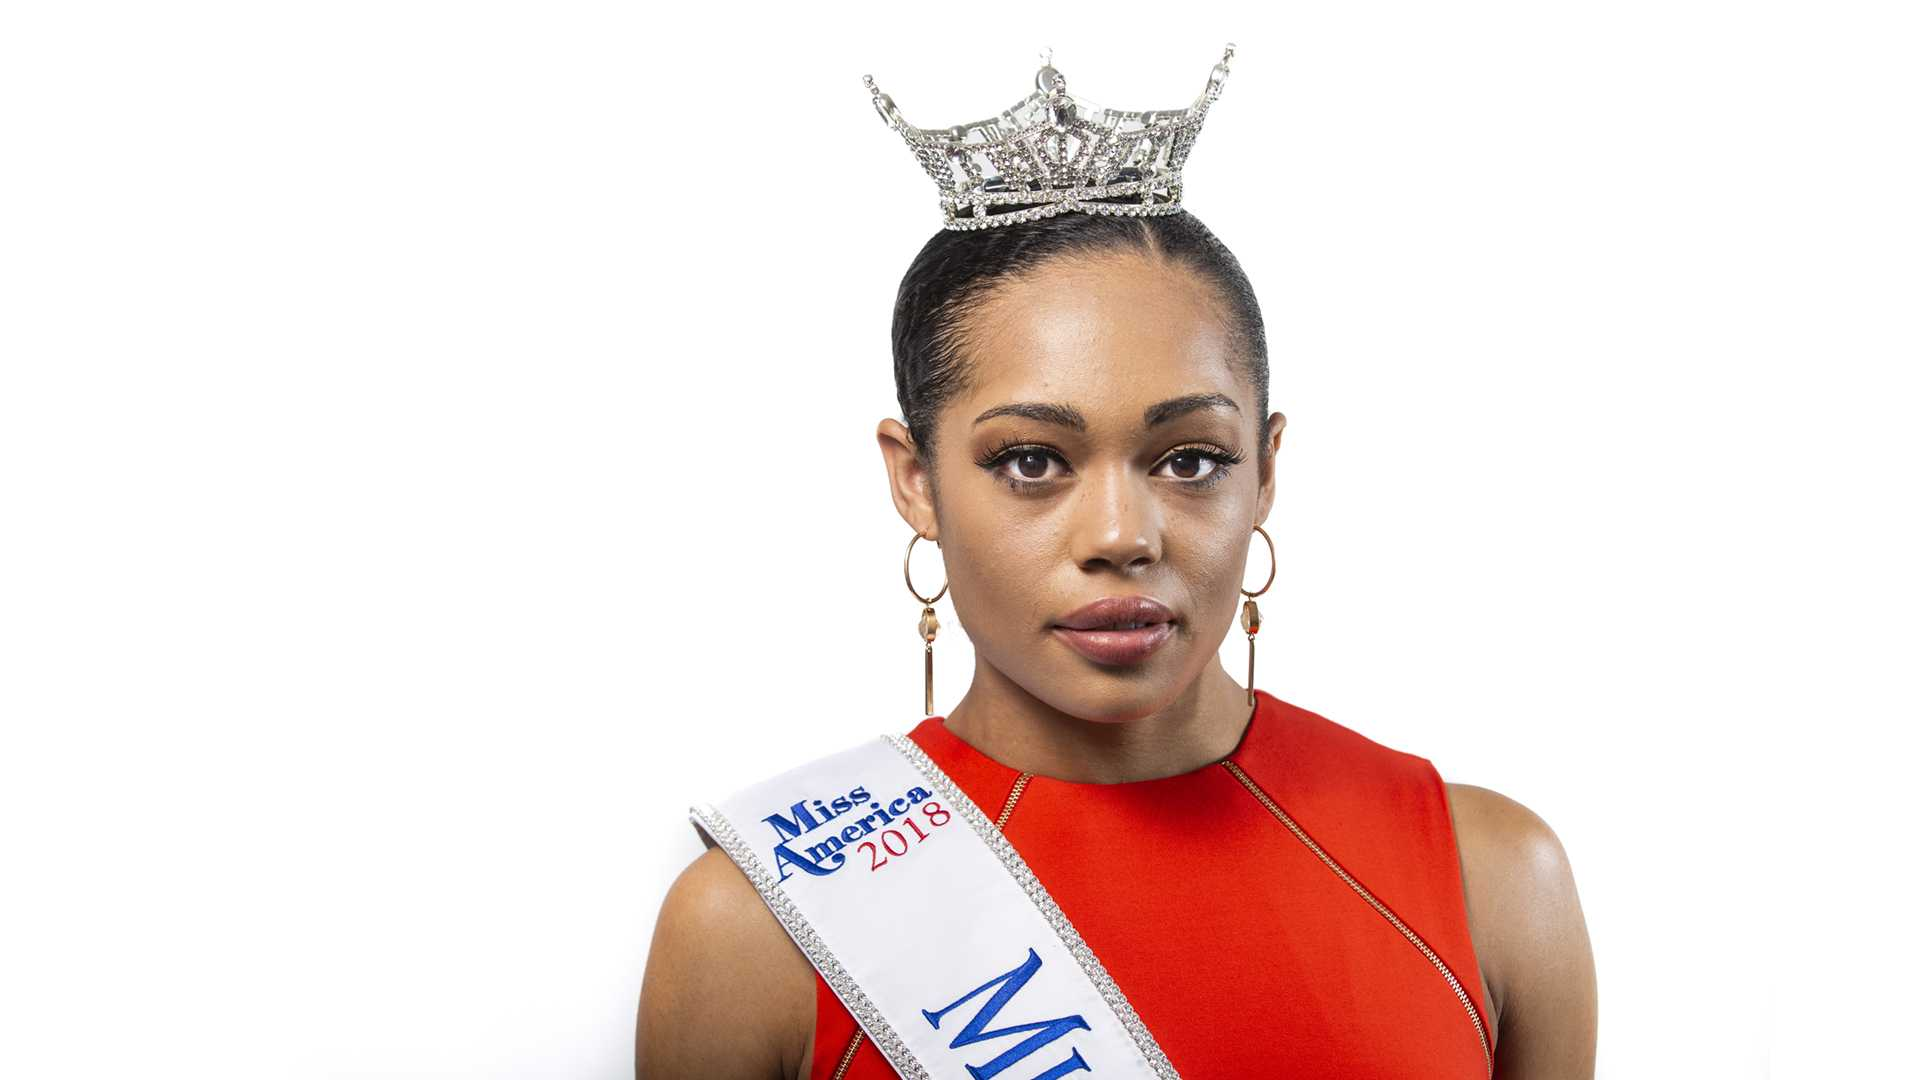 Miss Iowa 2018 Mikhayla Hughes-Shaw poses for a portrait on Friday, June 22, 2018. (Nick Rohlman/The Daily Iowan)